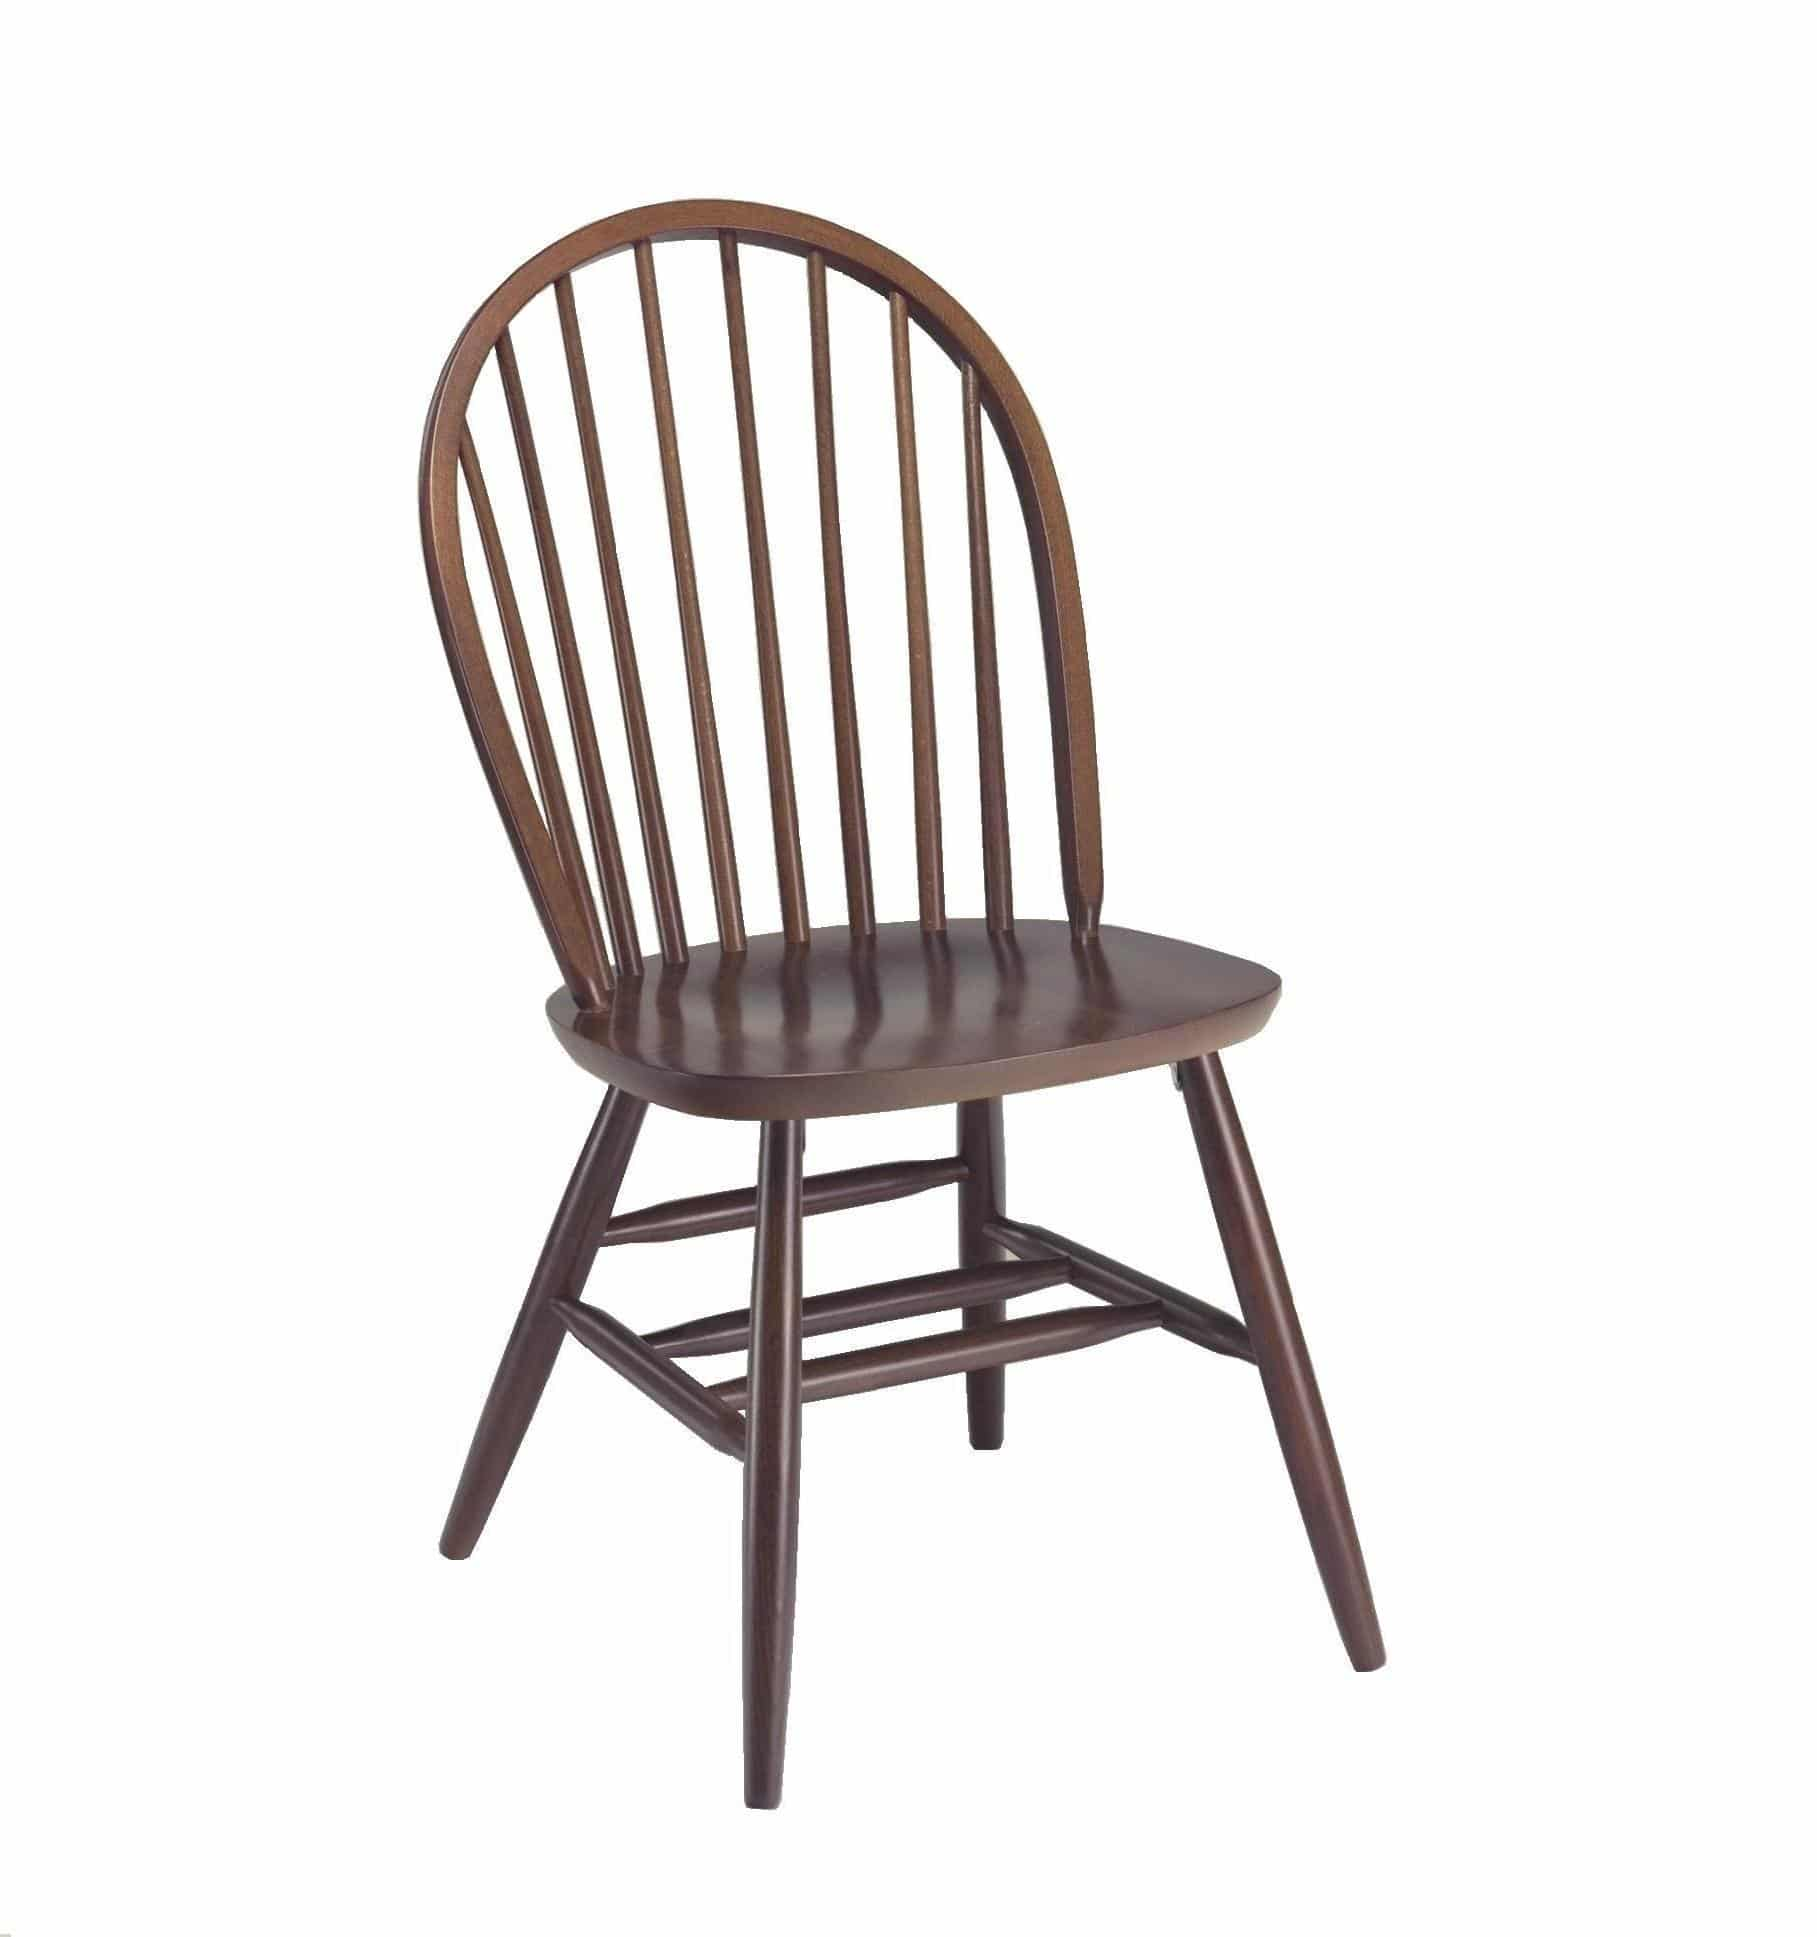 famous wooden chairs colonial chair with spindle back model 20 15213 | colonial windsor spindle early american bow back hoop back 20